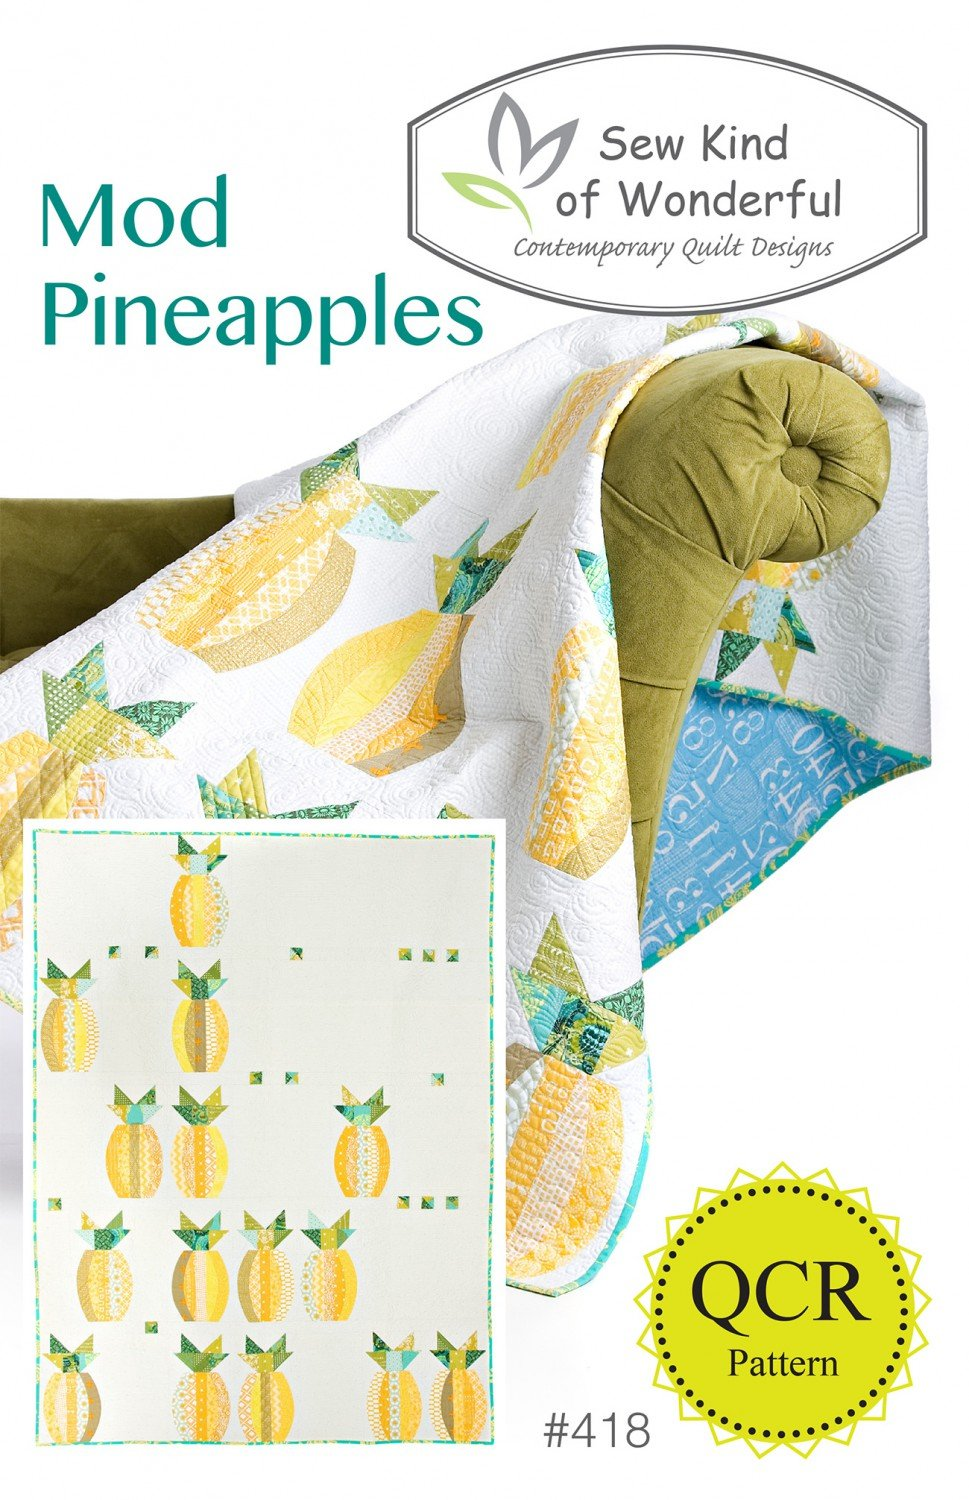 Mod Pineapples Quilt Pattern- Sew Kind of Wonderful